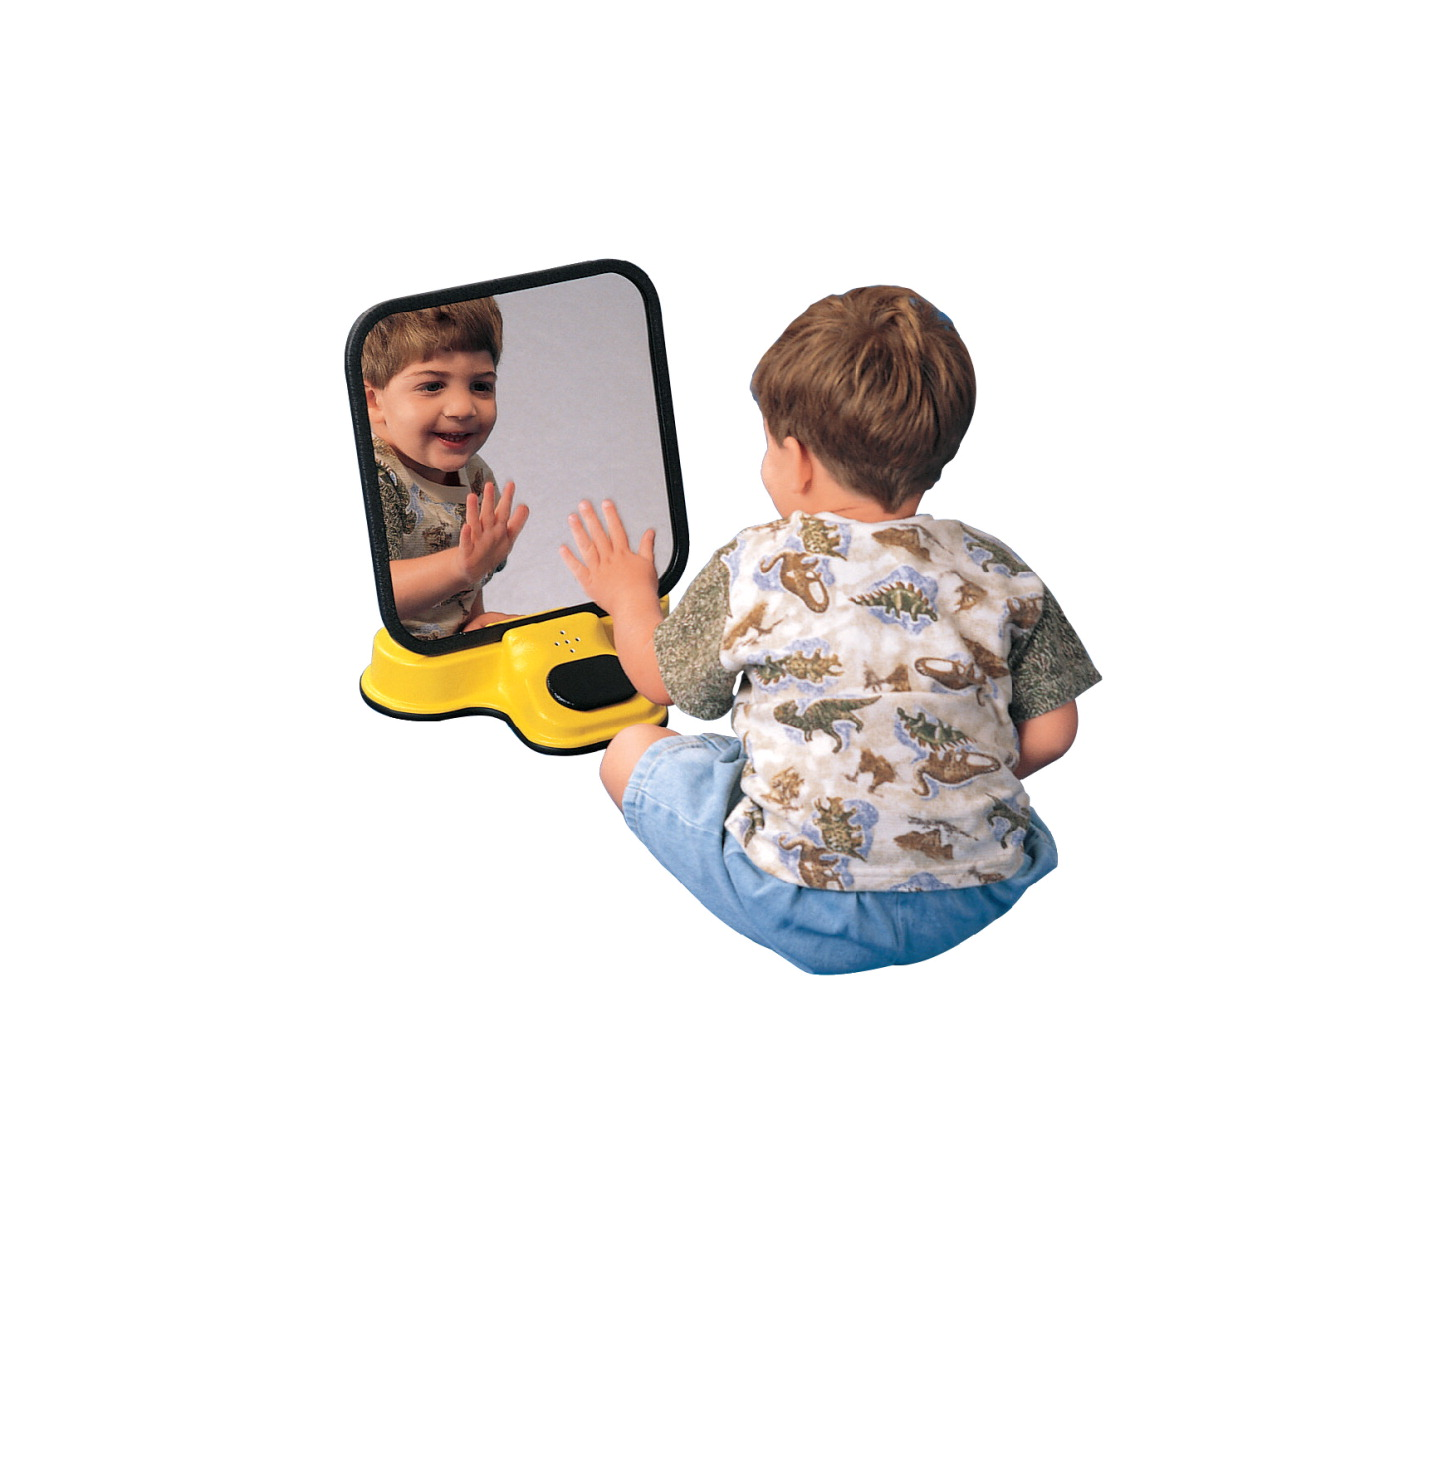 Sensation Products Talking Speech Therapy Unbreakable Mirror, 8 X 12 X-14 in, Acrylic